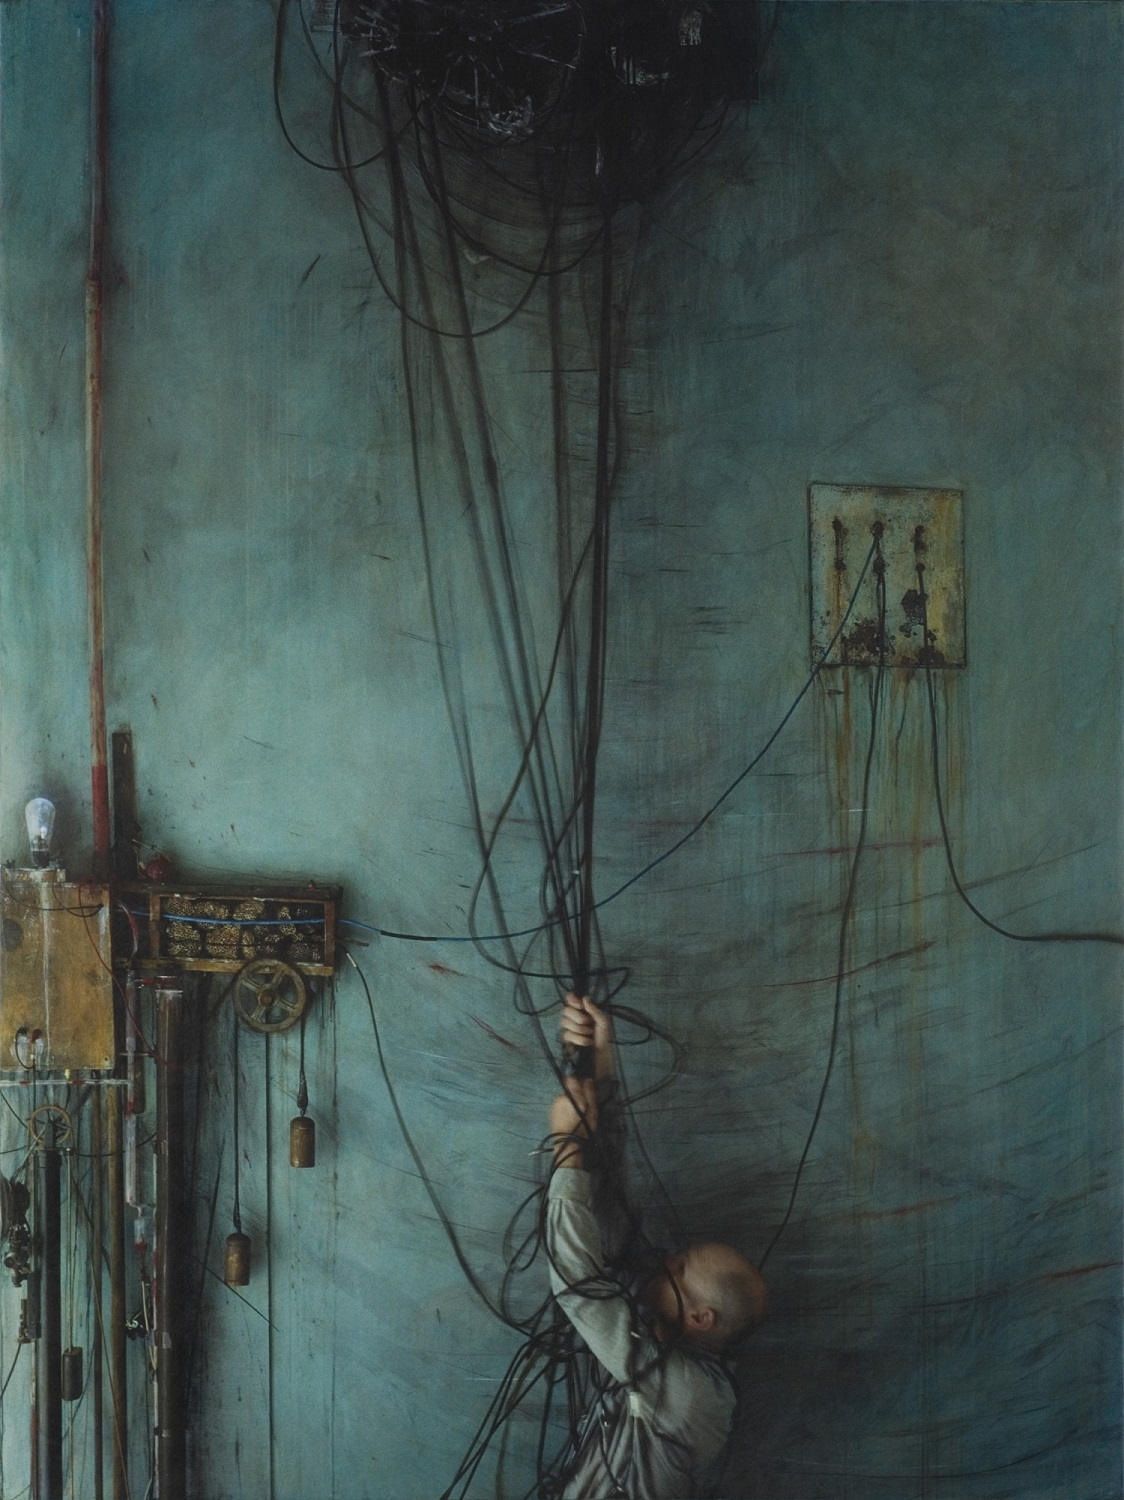 ROBERT AND SHANA PARKEHARRISON 1